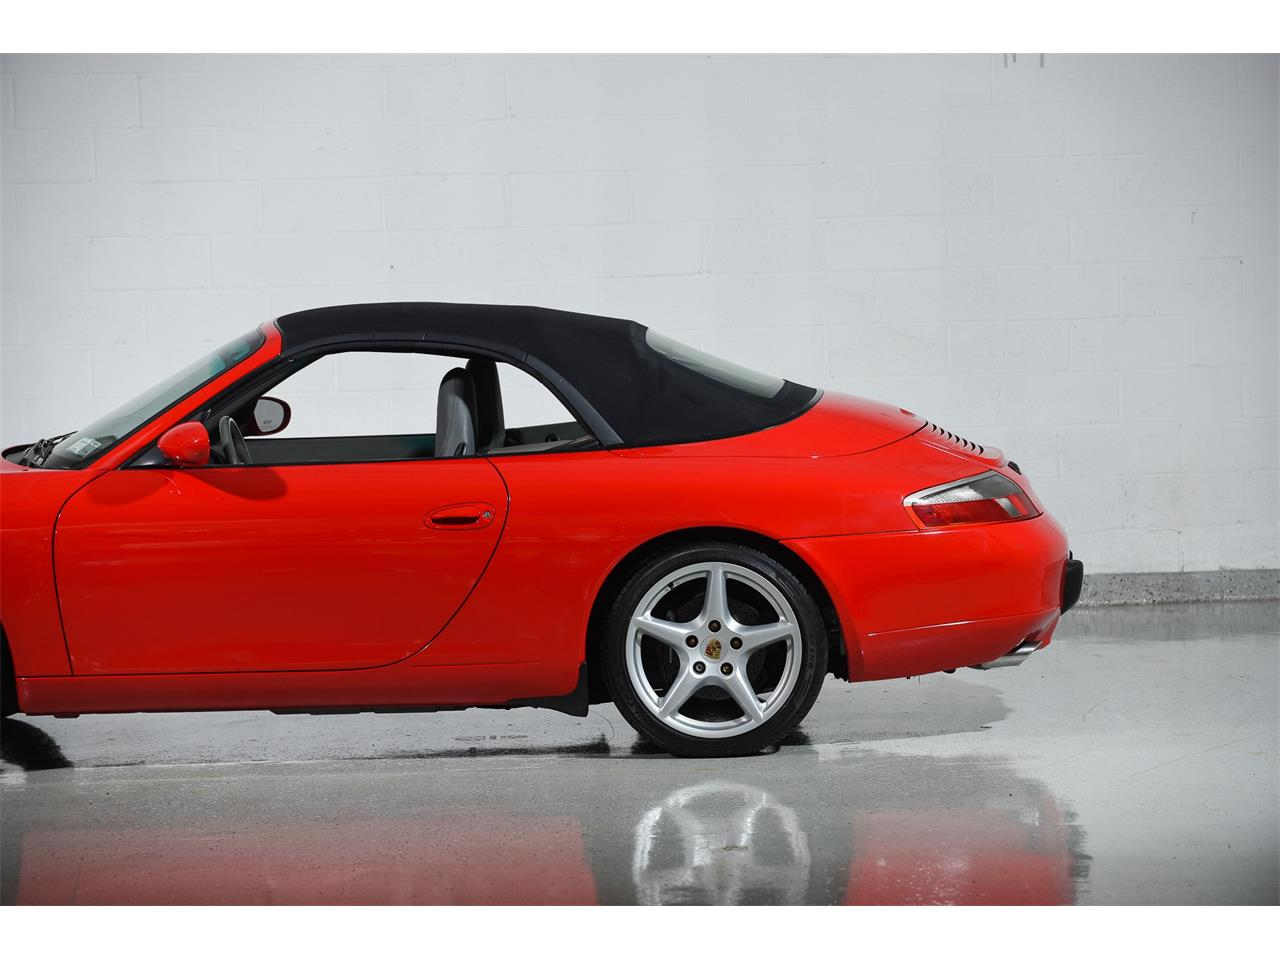 Large Picture of 1999 Porsche 911 located in New York - $24,500.00 - MBOH